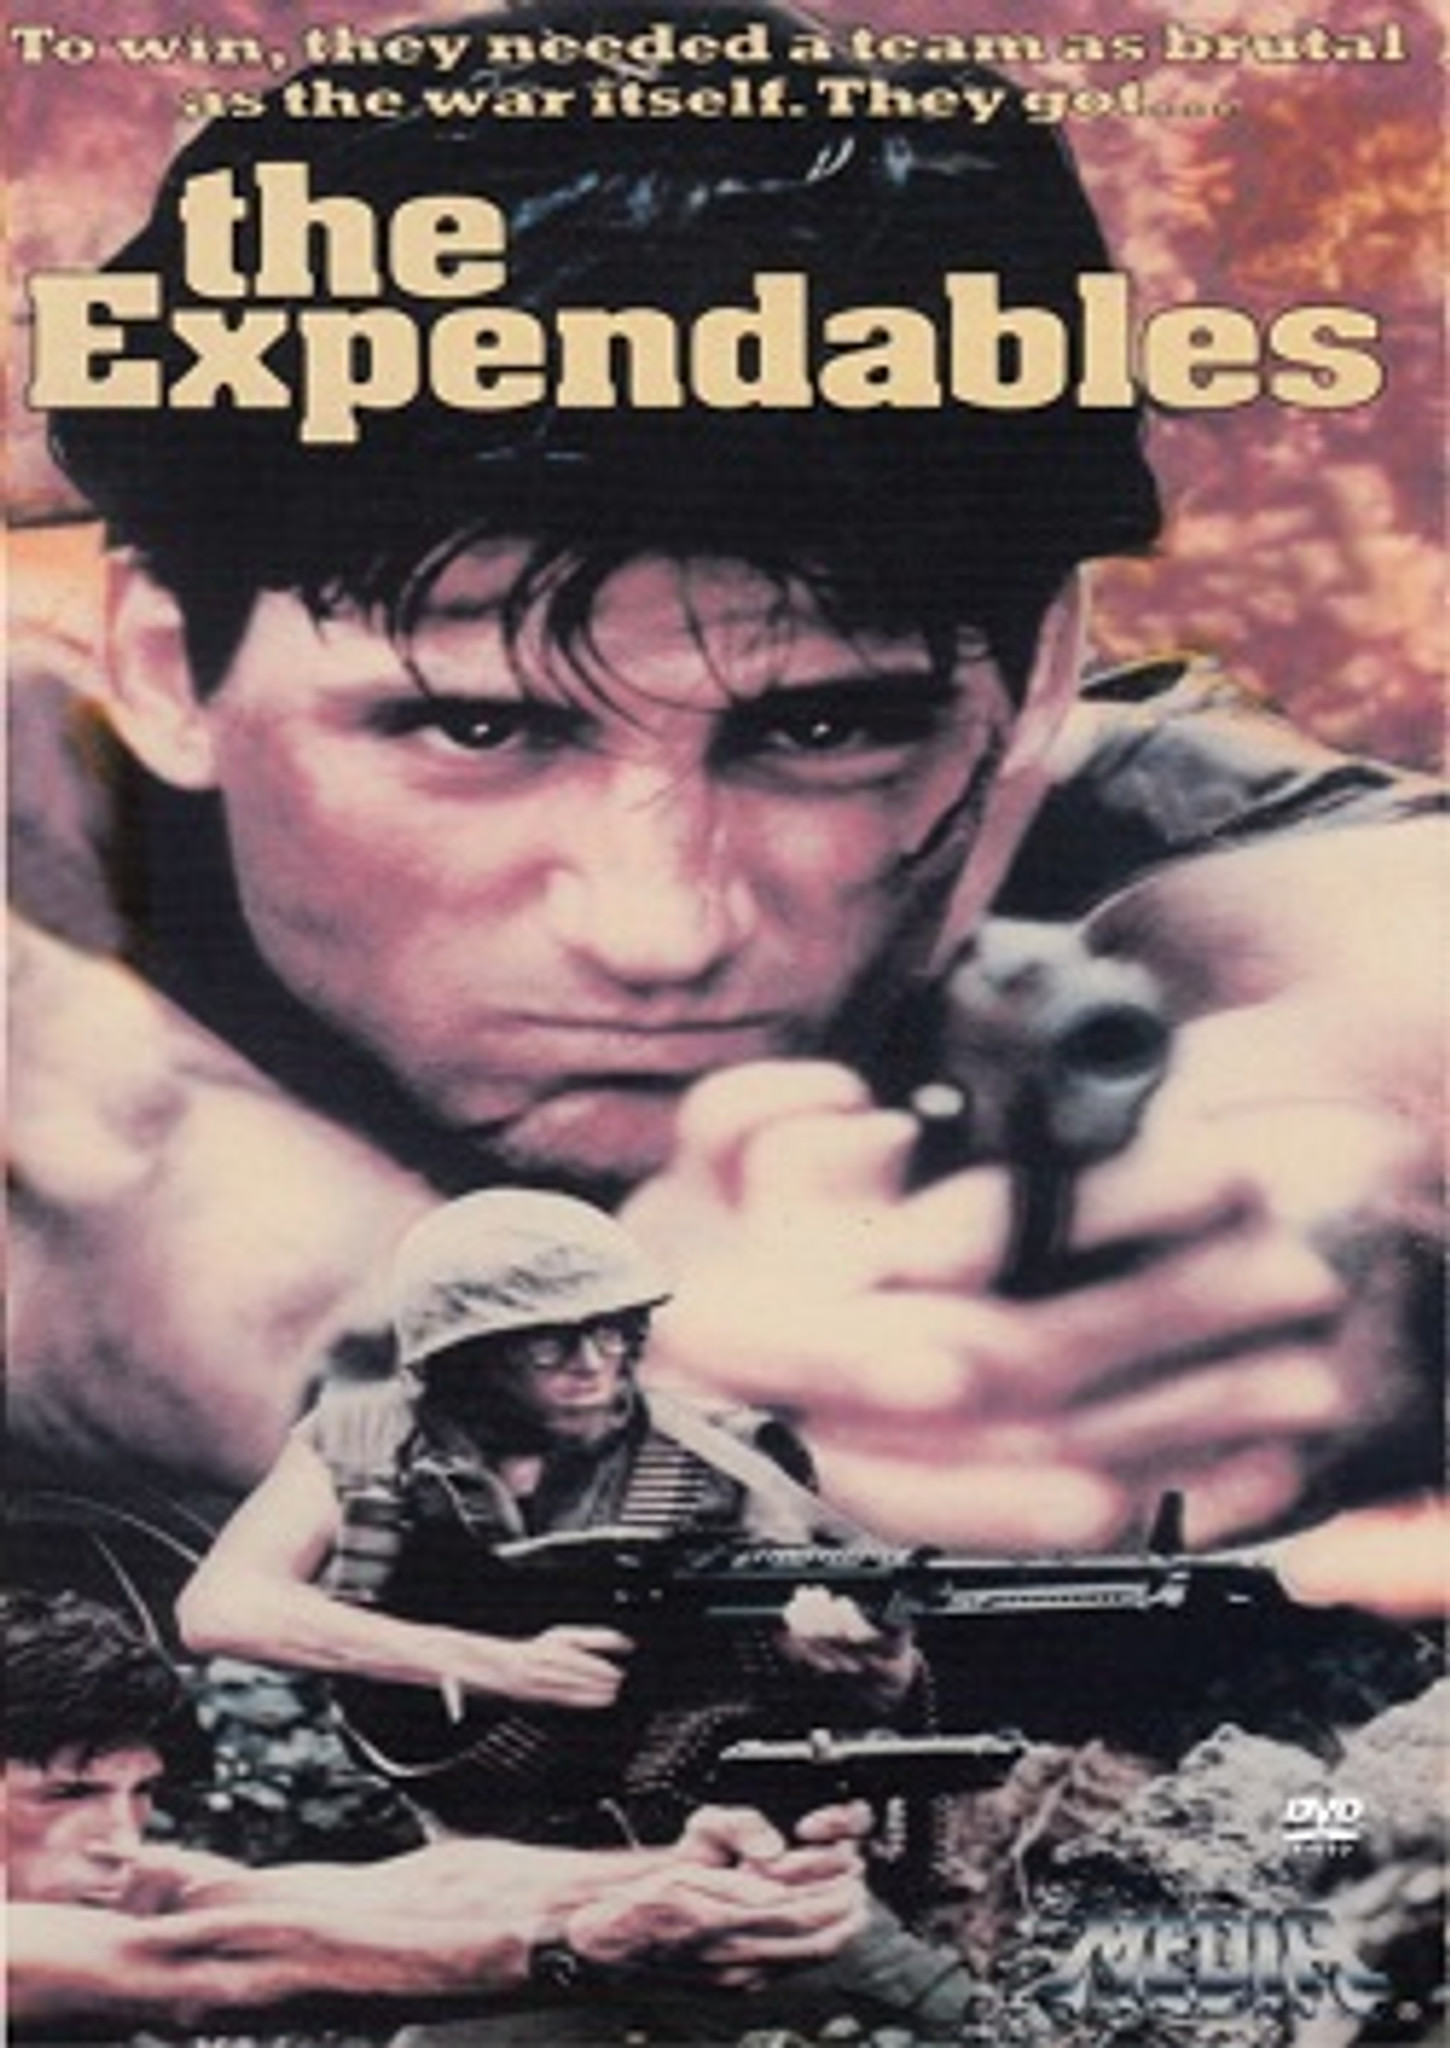 The Expendables 1988